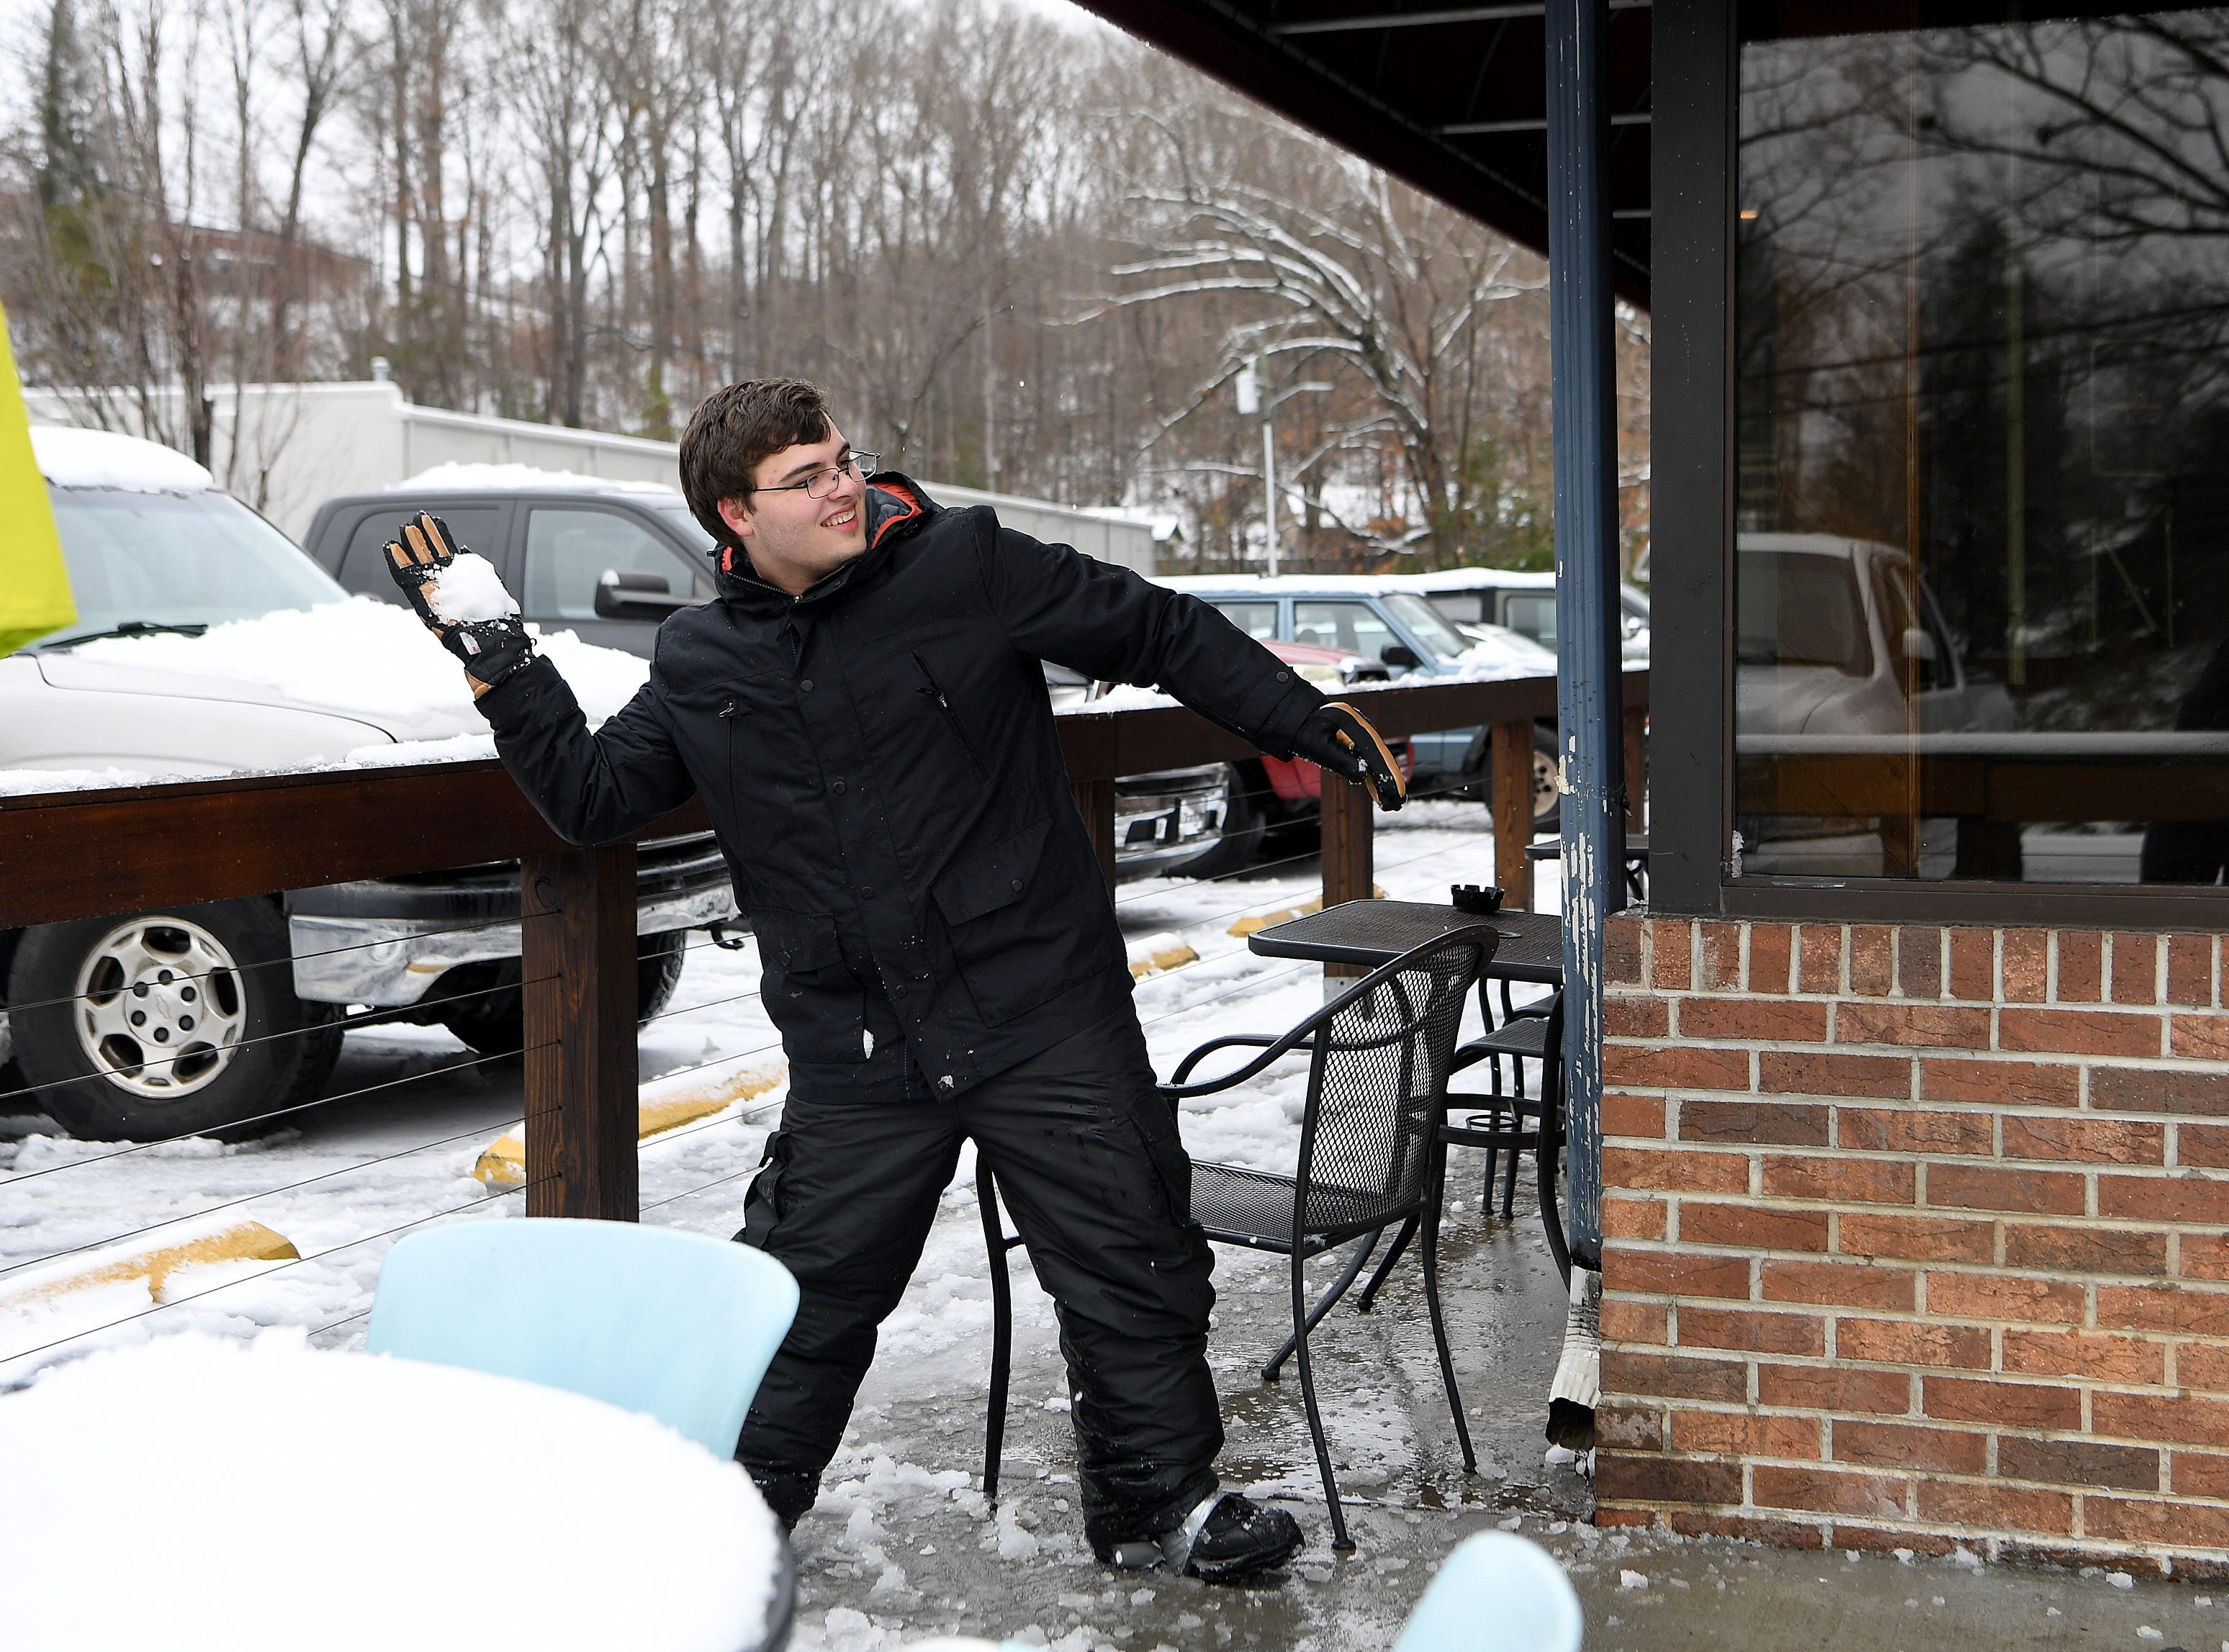 Reece Combs winds up to throw a snowball during a fight on the porch of The Social in East Asheville on Dec. 9, 2018.